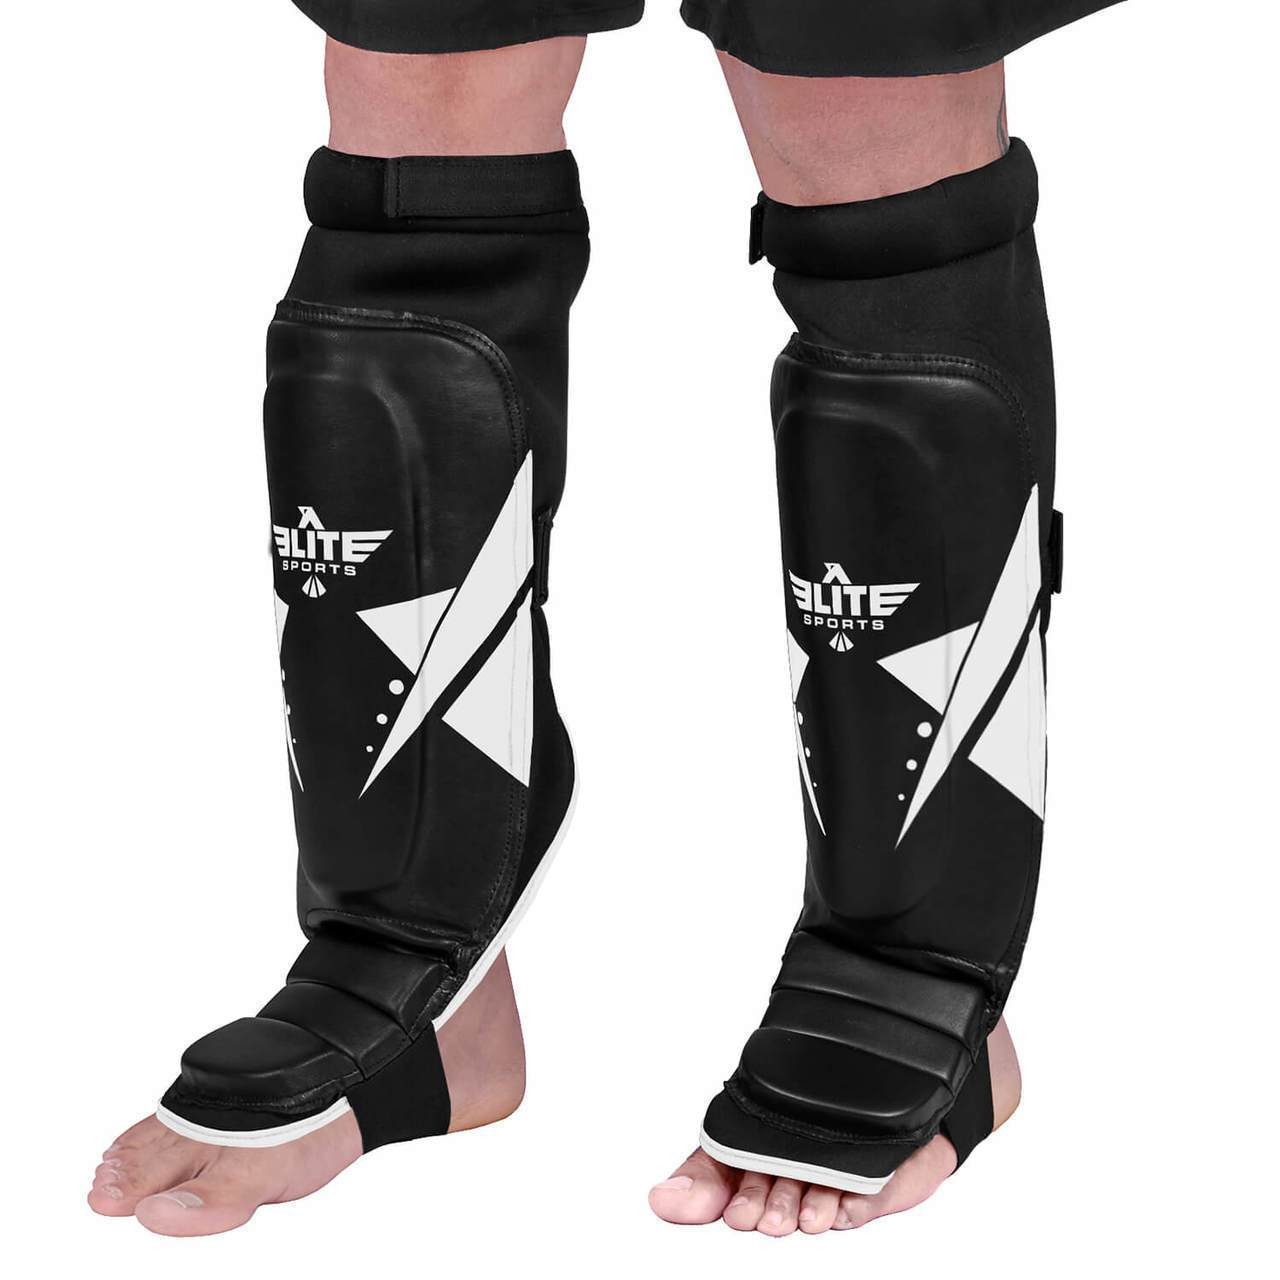 Load image into Gallery viewer, Elite Sports Star Series Black/White Training Shin Guards